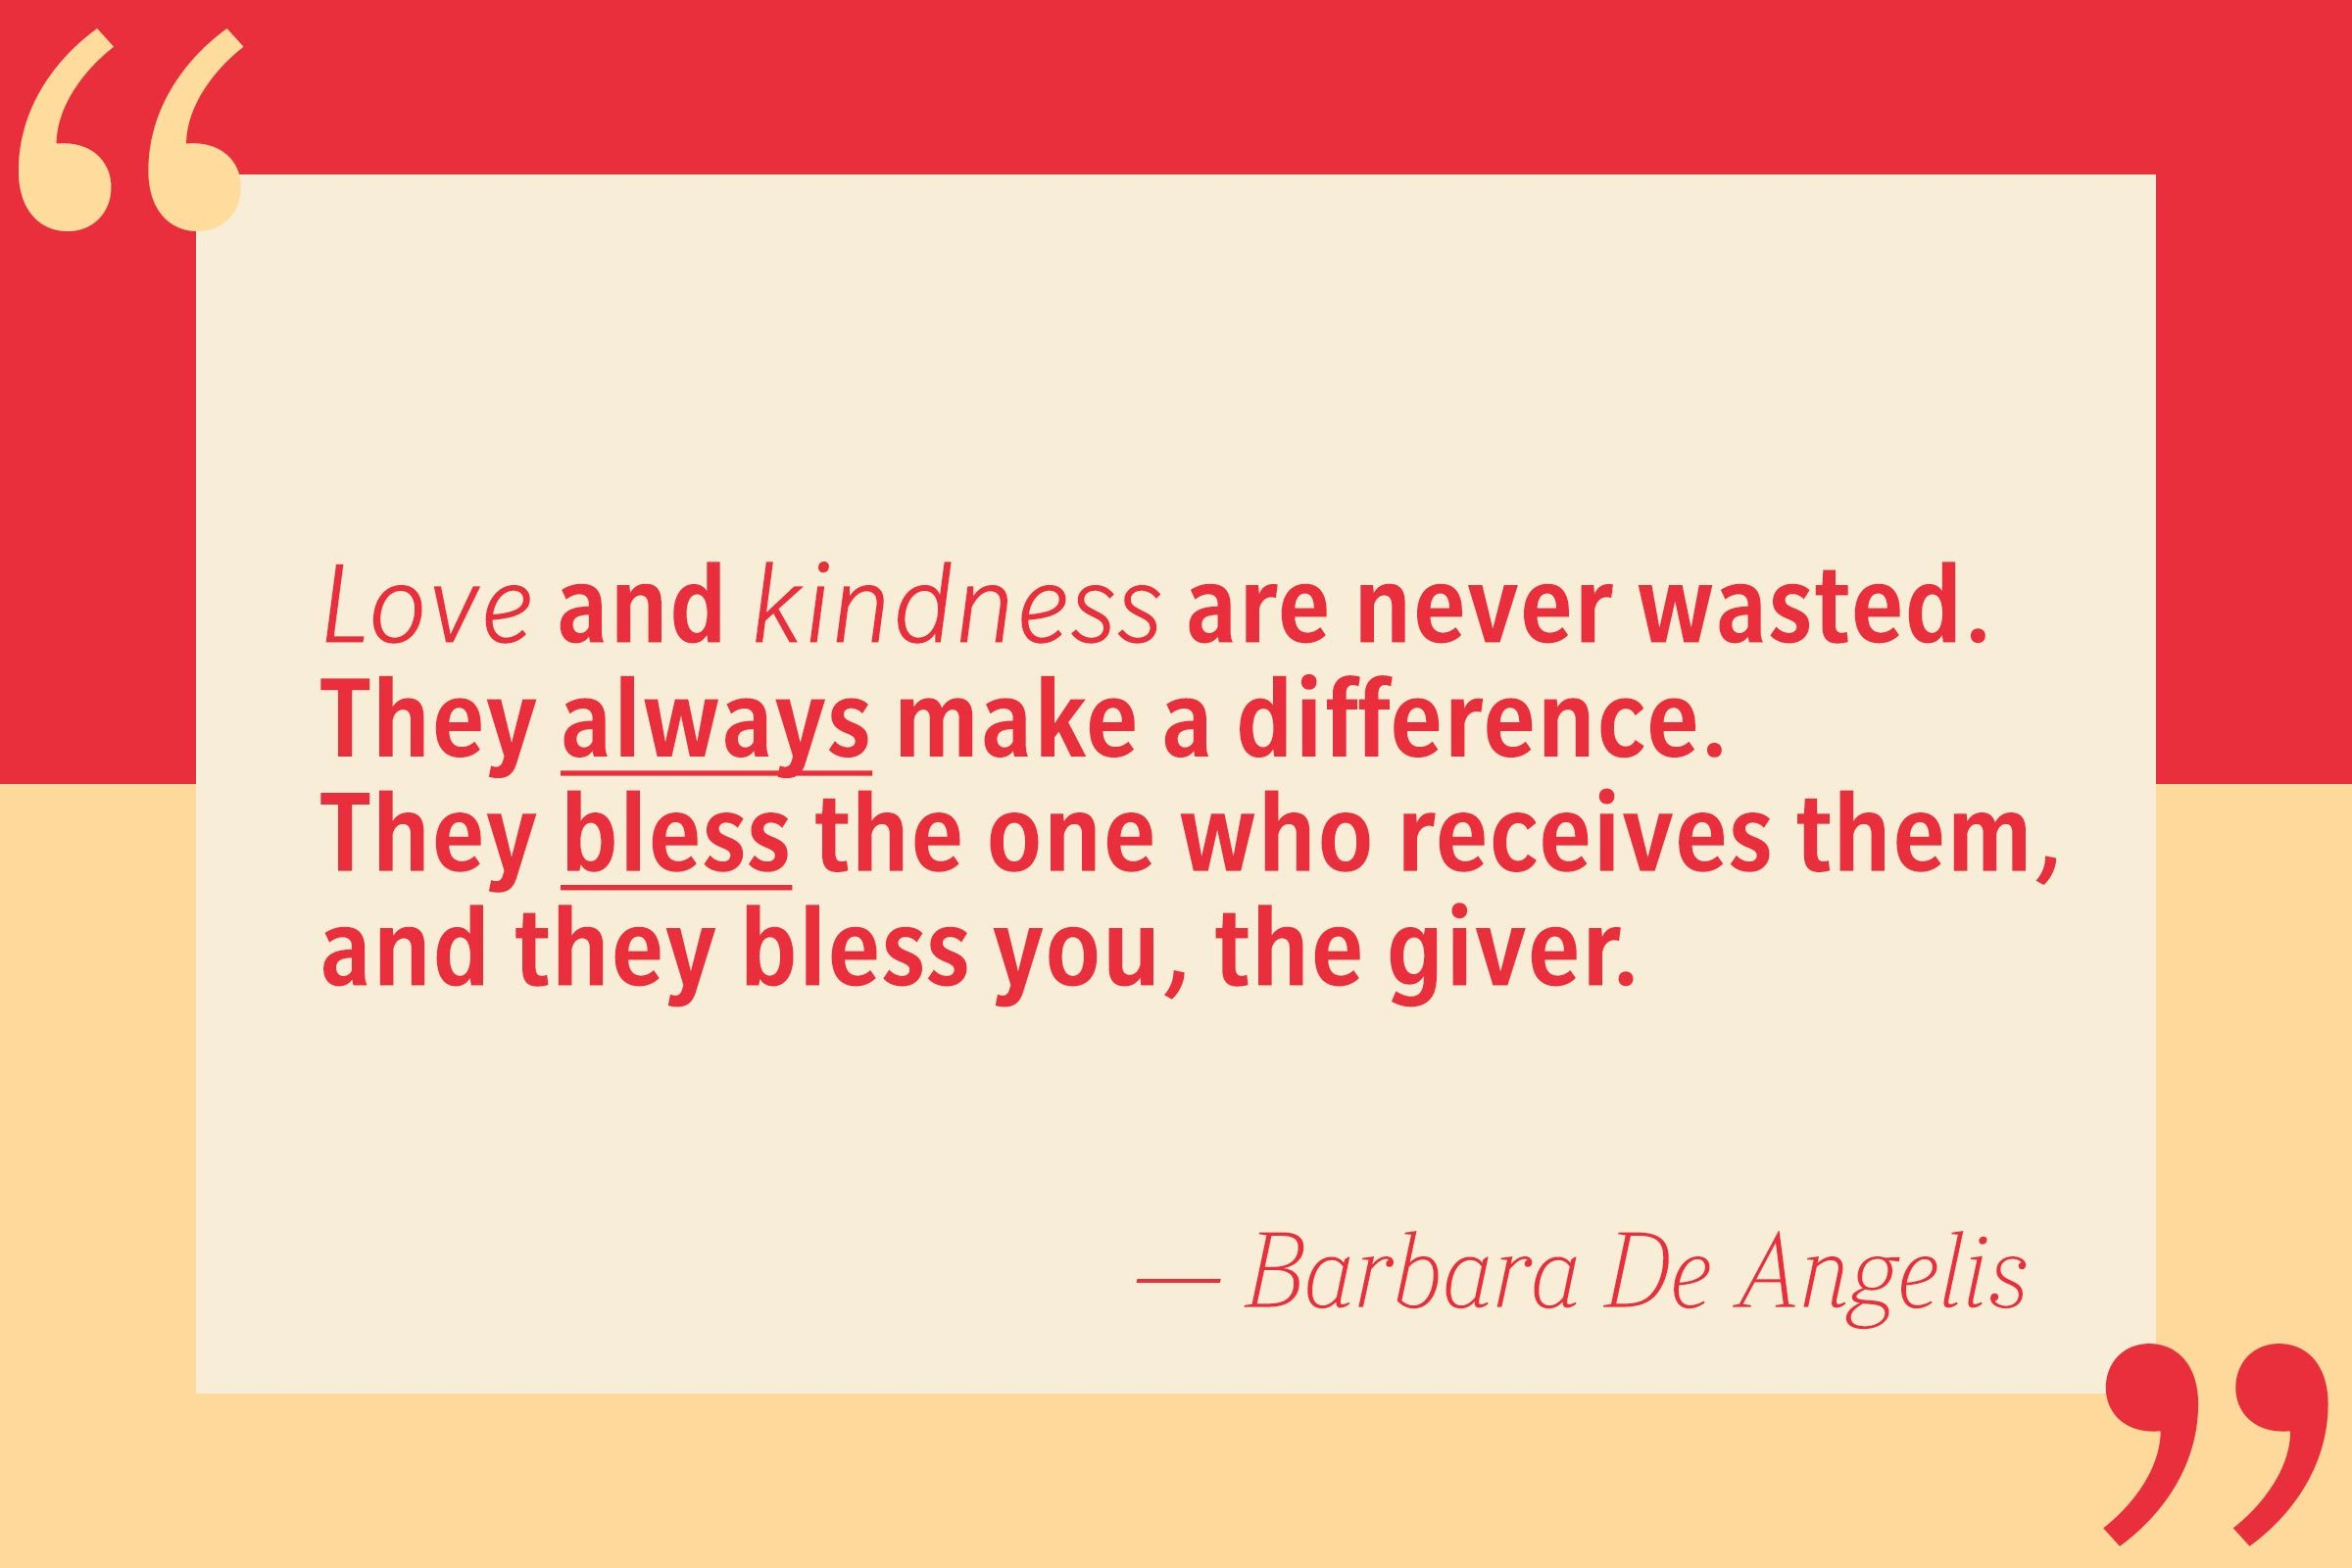 Love and kindness are never wasted. They always make a difference. They bless the one who receives them, and they bless you, the giver. — Barbara De Angelis